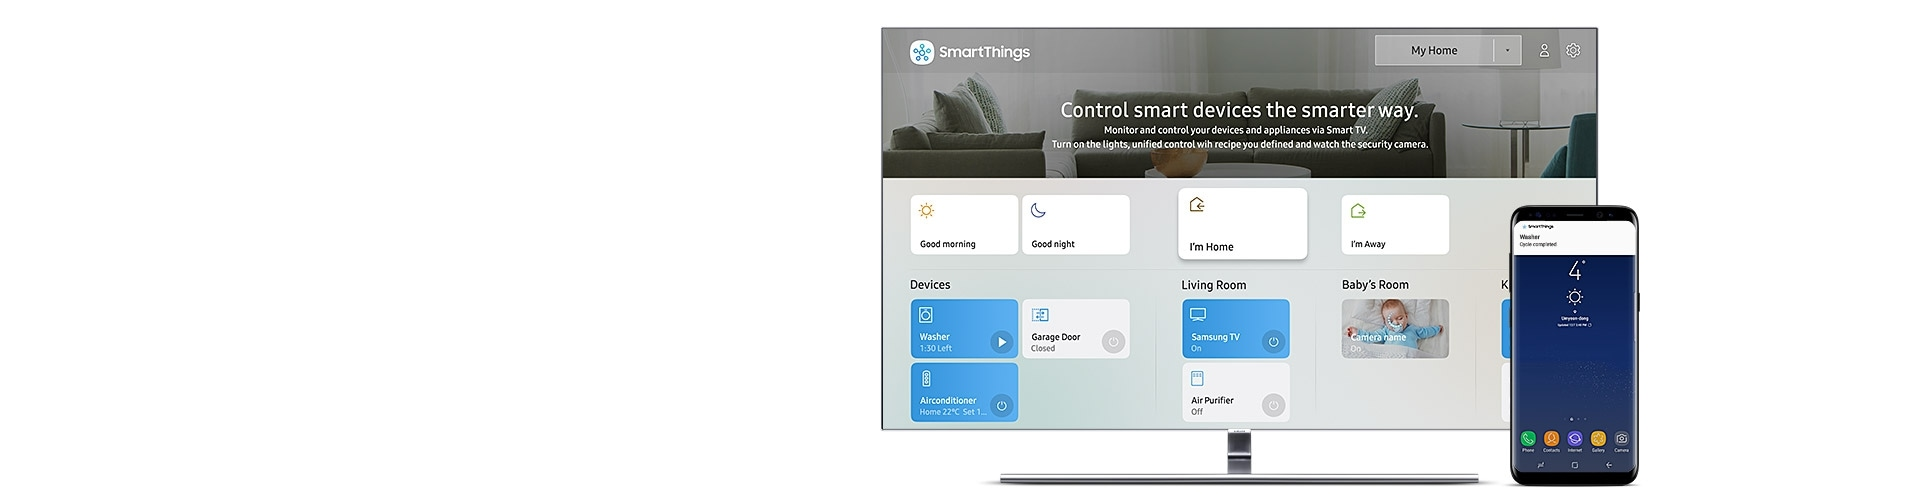 Samsung QLED TV is shown alongside a mobile phone. TV screen displays IoT Dashboard that enable you to control connected device in smarter way, showing the status of your devices such as washer, garage door, air conditioner. And mobile phone is showing a notification that saying your washer cycle is completed.